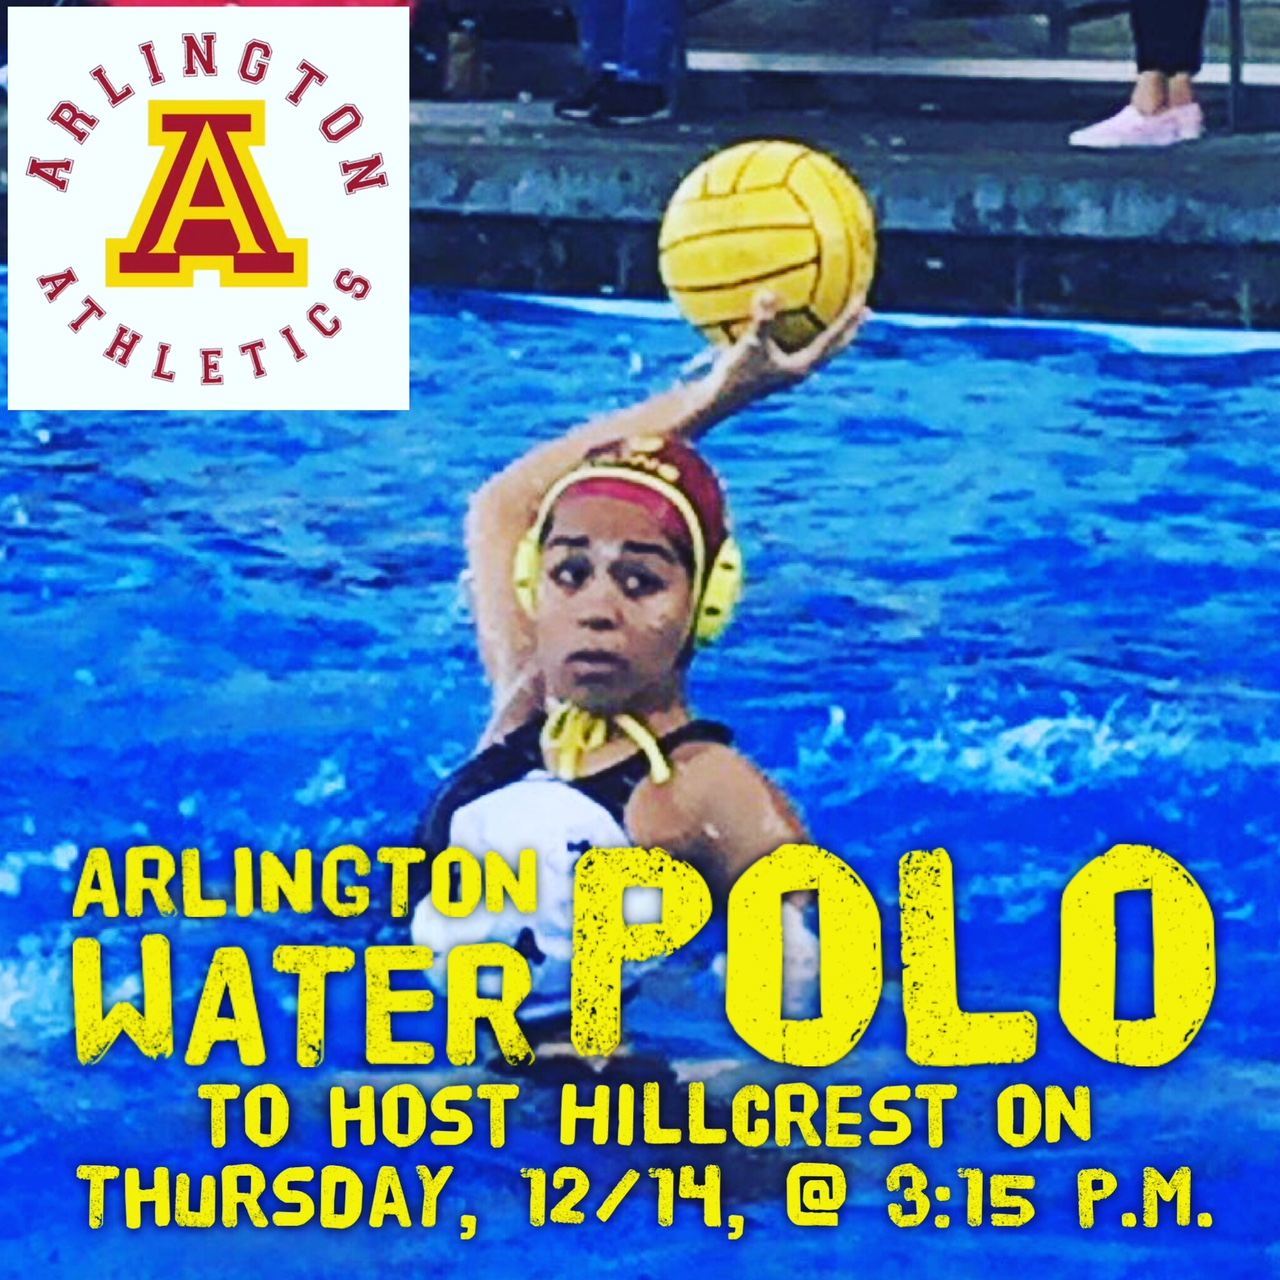 Arlington Girls' Water Polo vs. Hillcrest, on Thursday, 12/14.  Three levels to play.